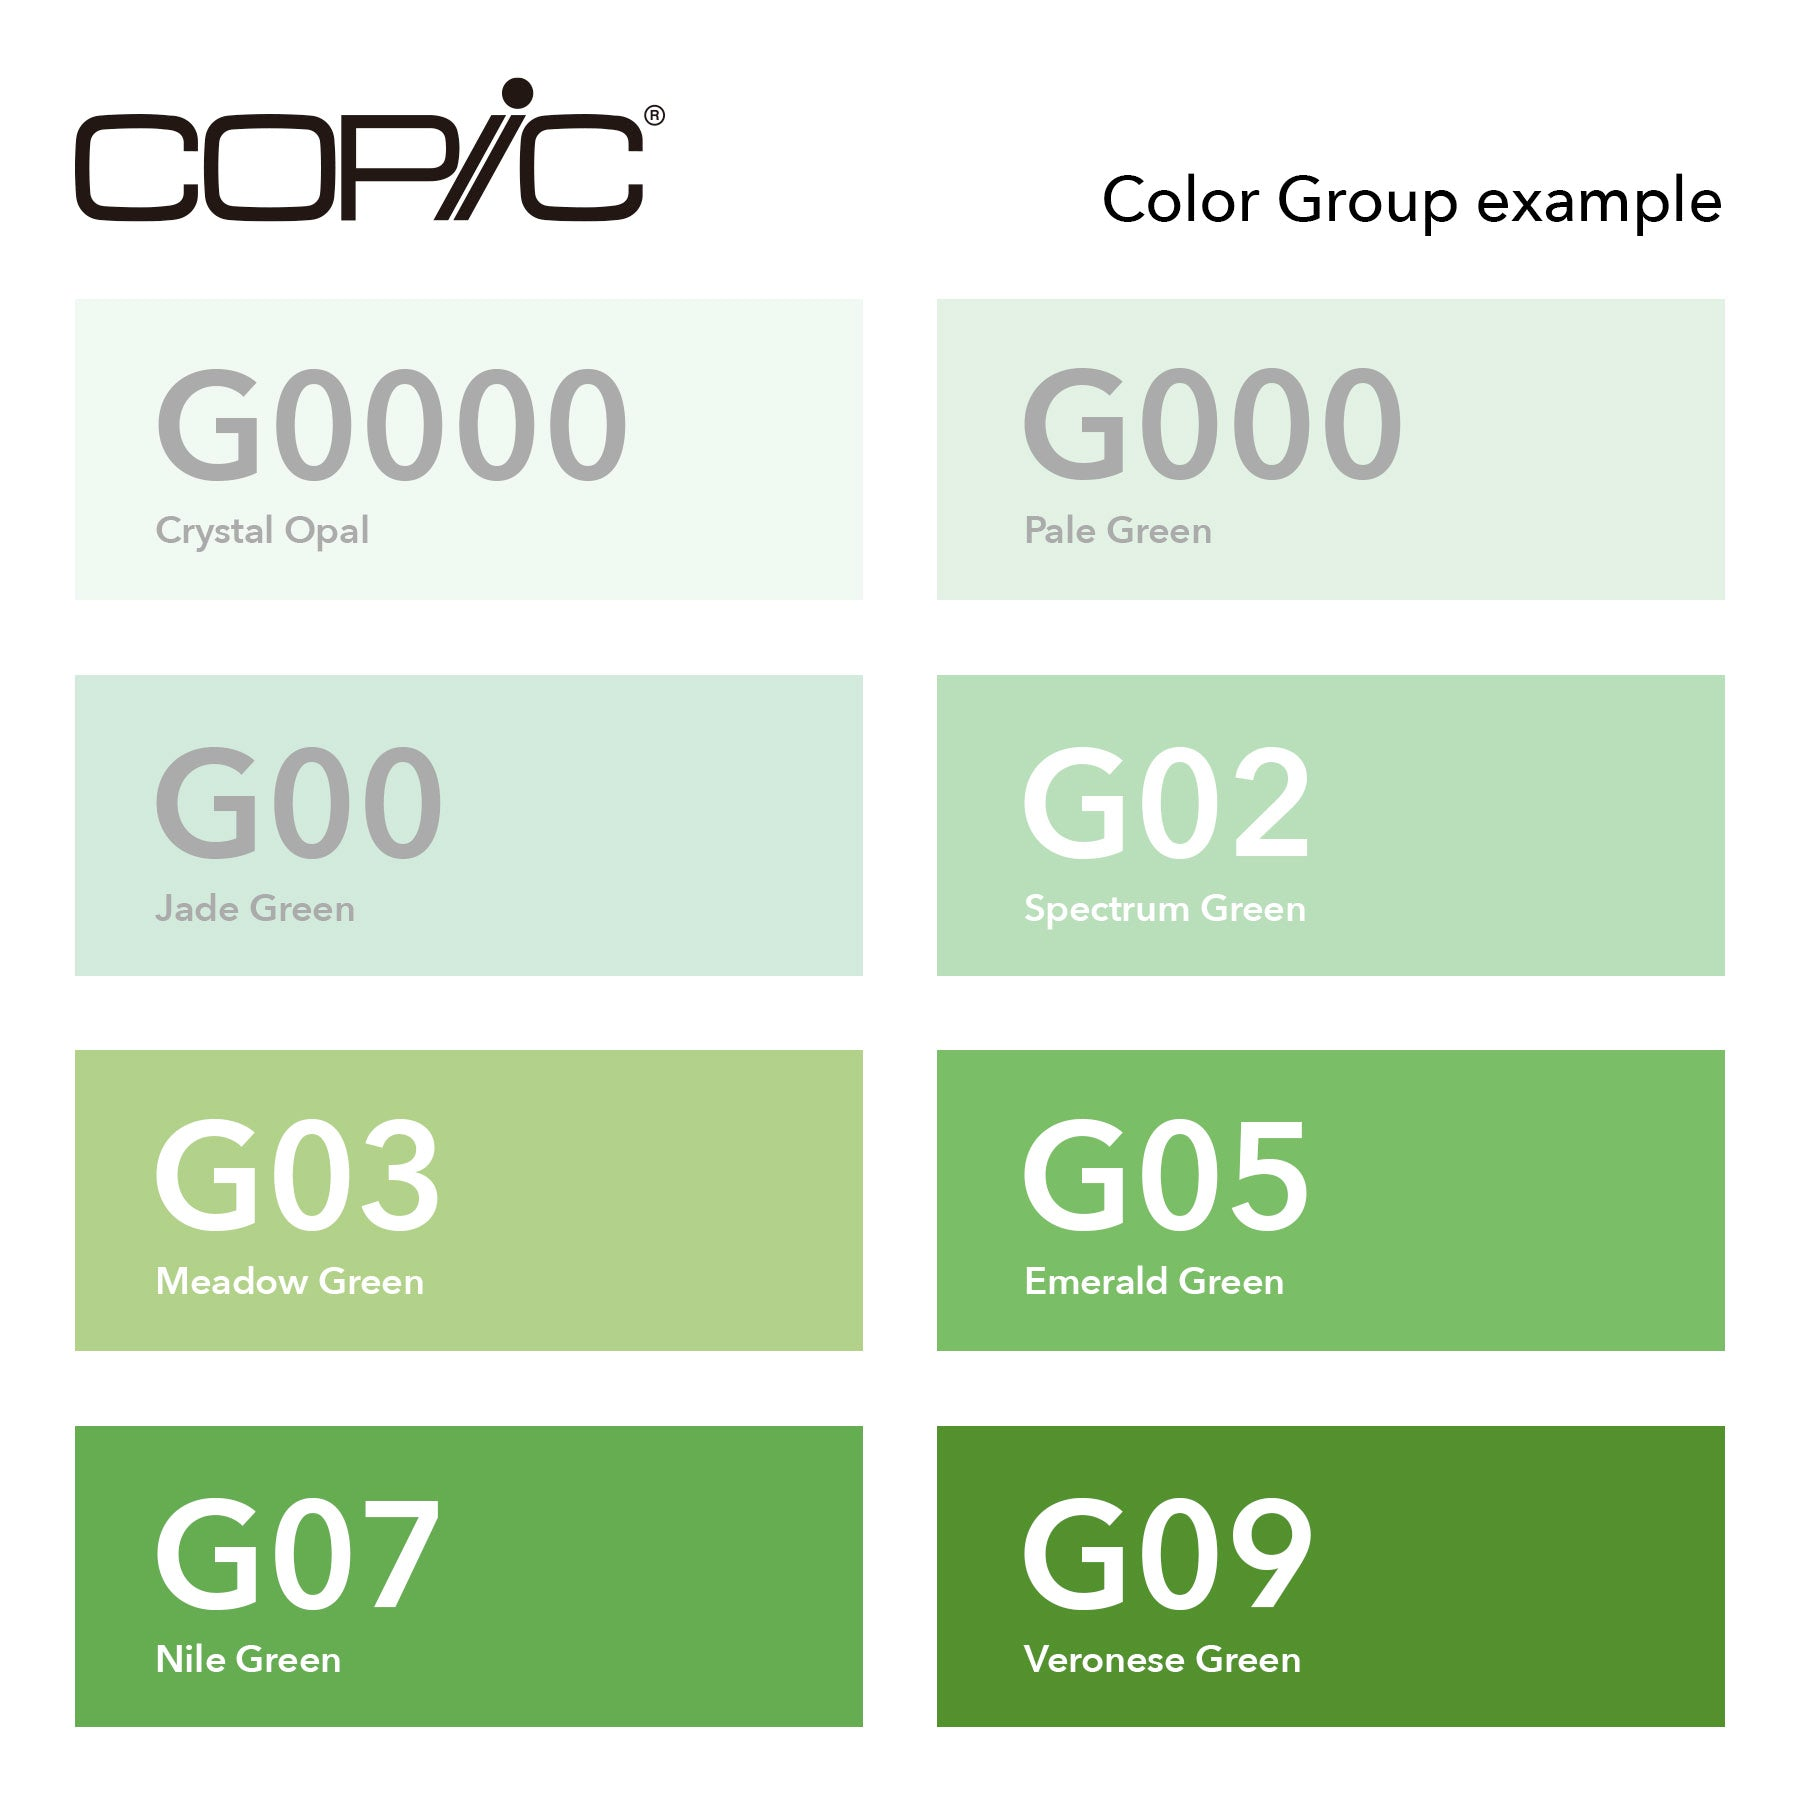 Color Group